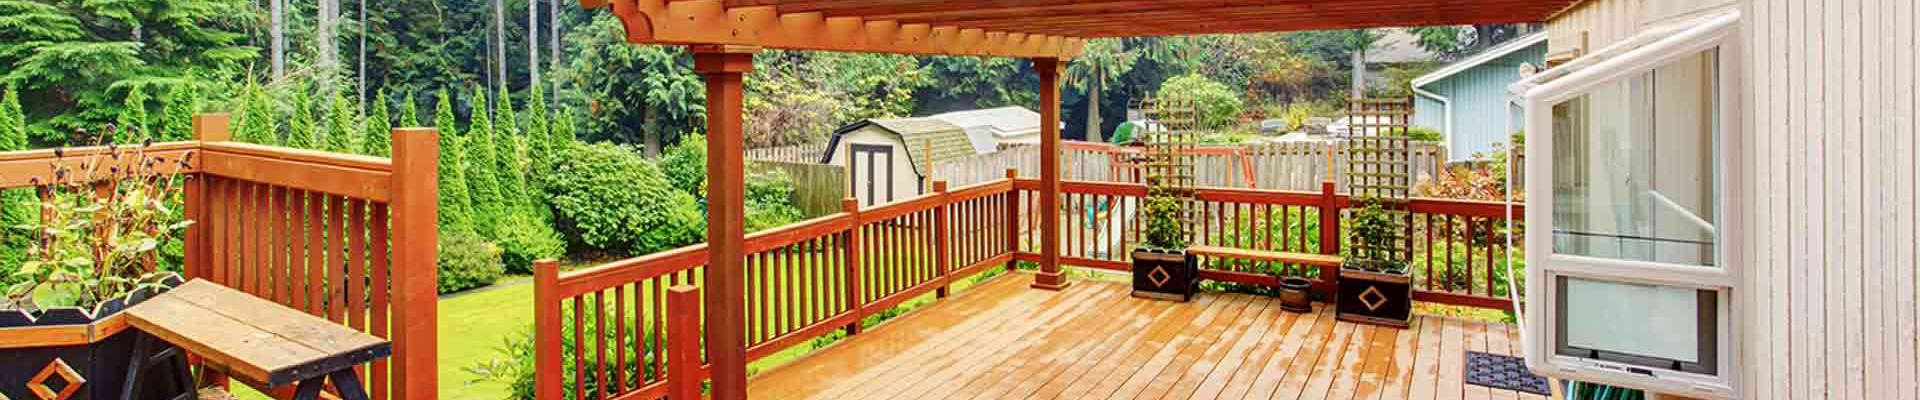 Deckboard and Railing Certification